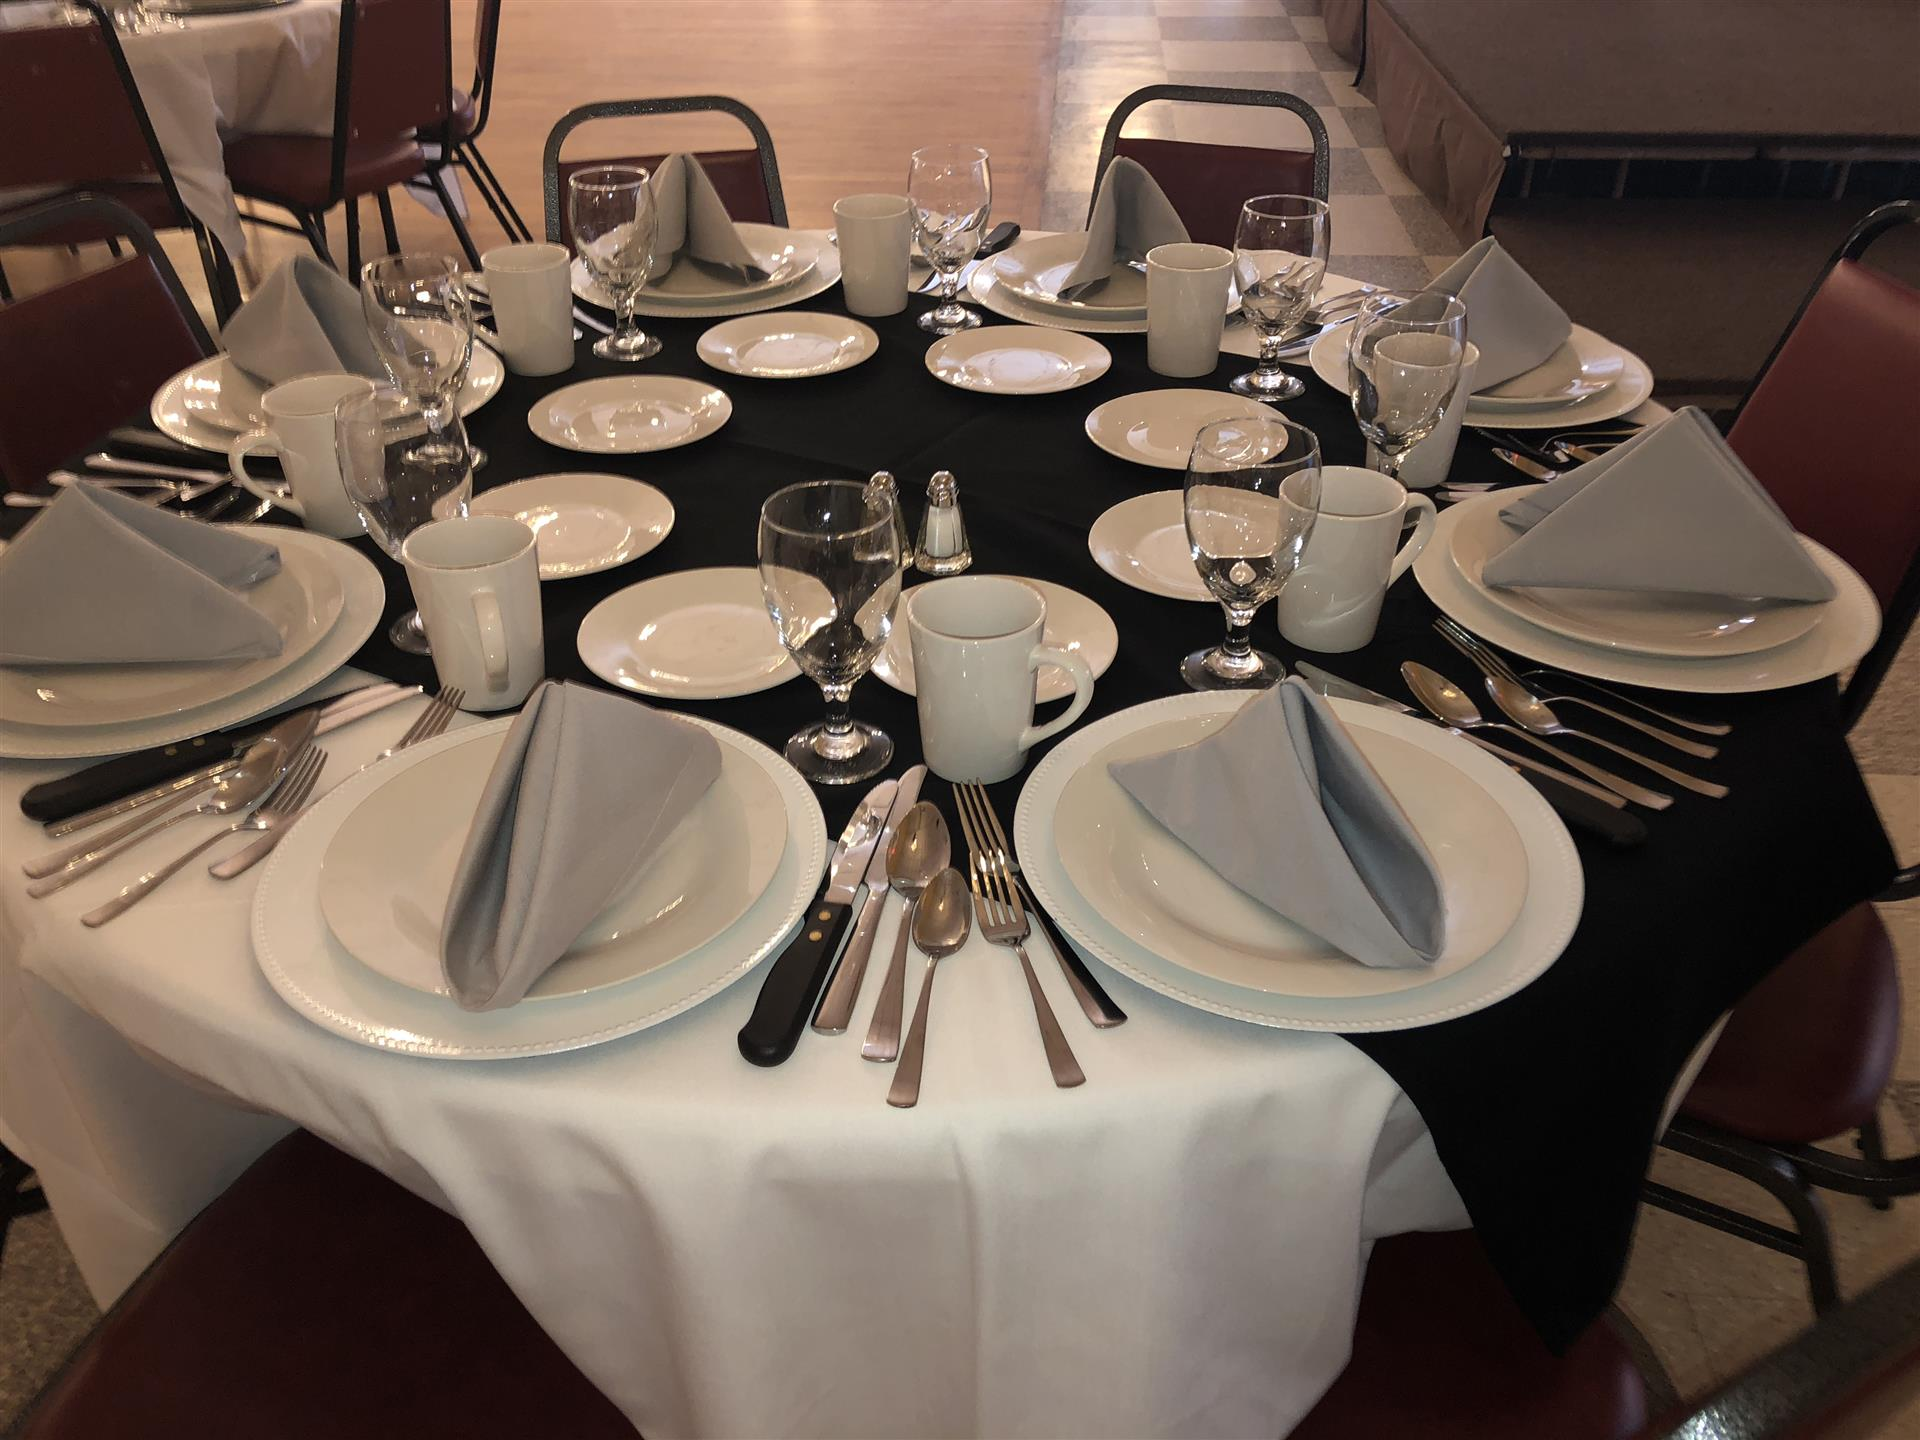 Tables with plates